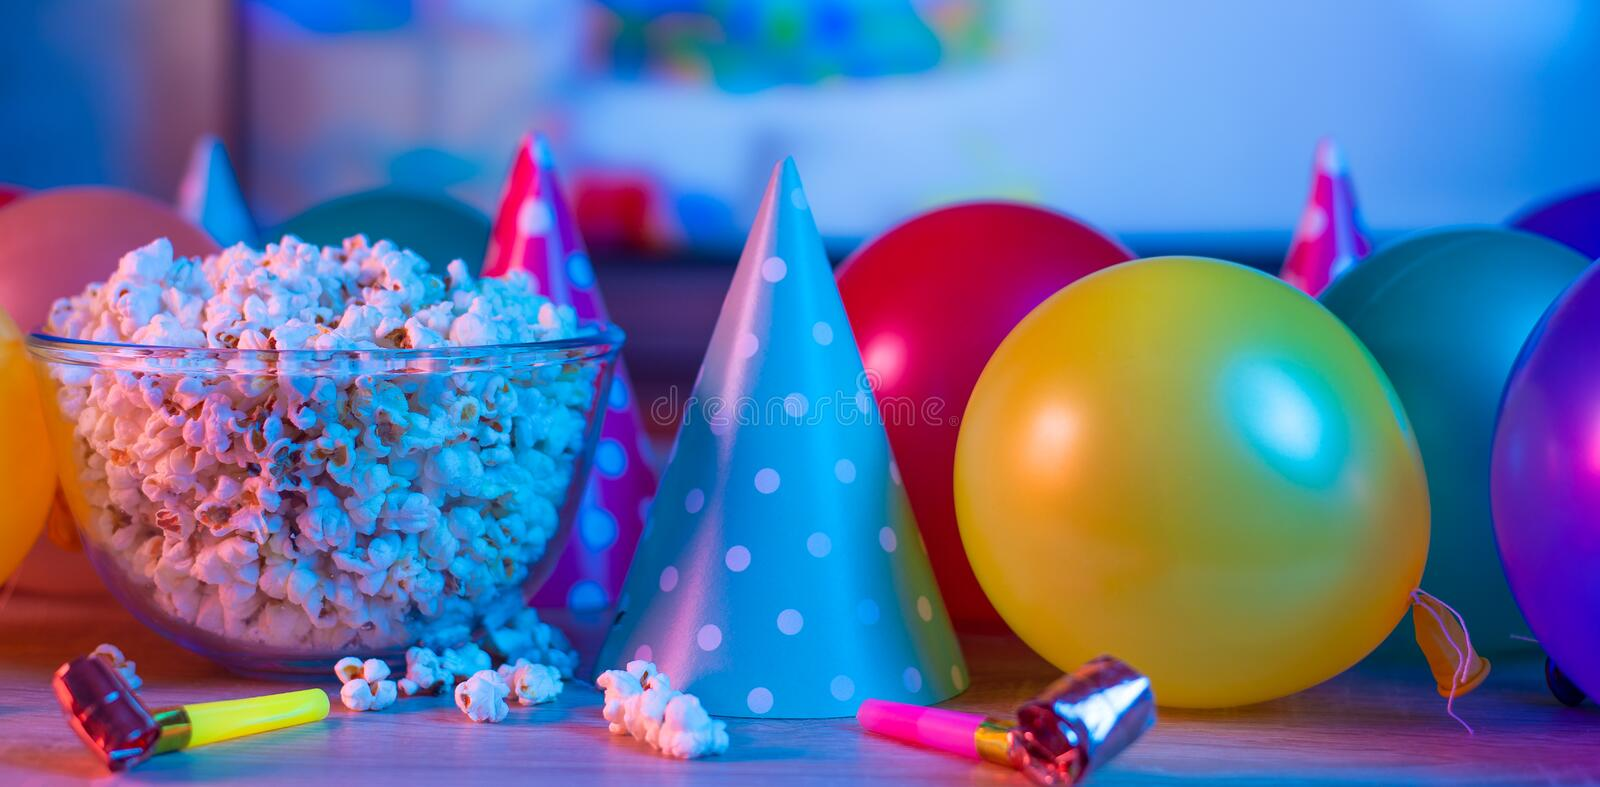 Popcorn birthday, party. On the background of TV and color bright light. Concept of festivals. Food celebration event delicious colorful tasty decoration royalty free stock photos